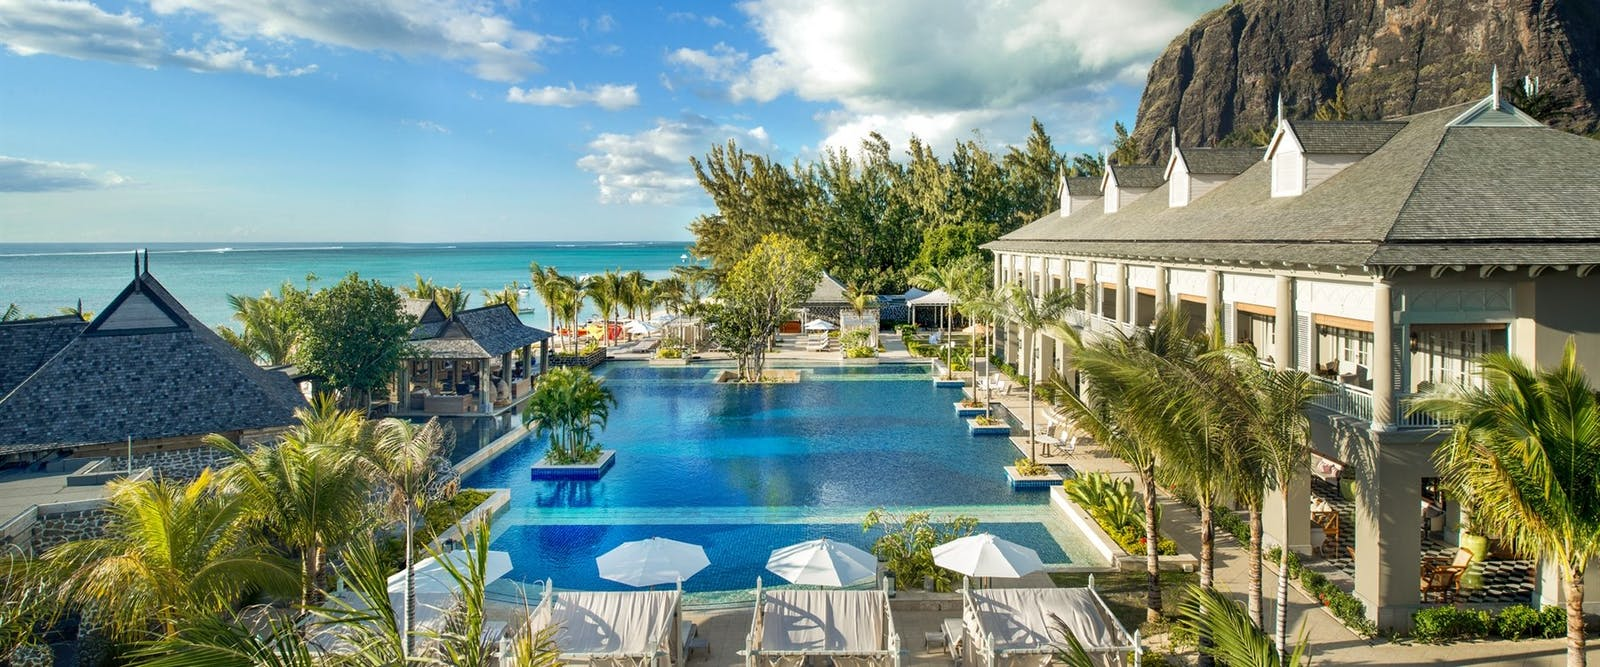 Swimming pool at The St. Regis Mauritius Resort